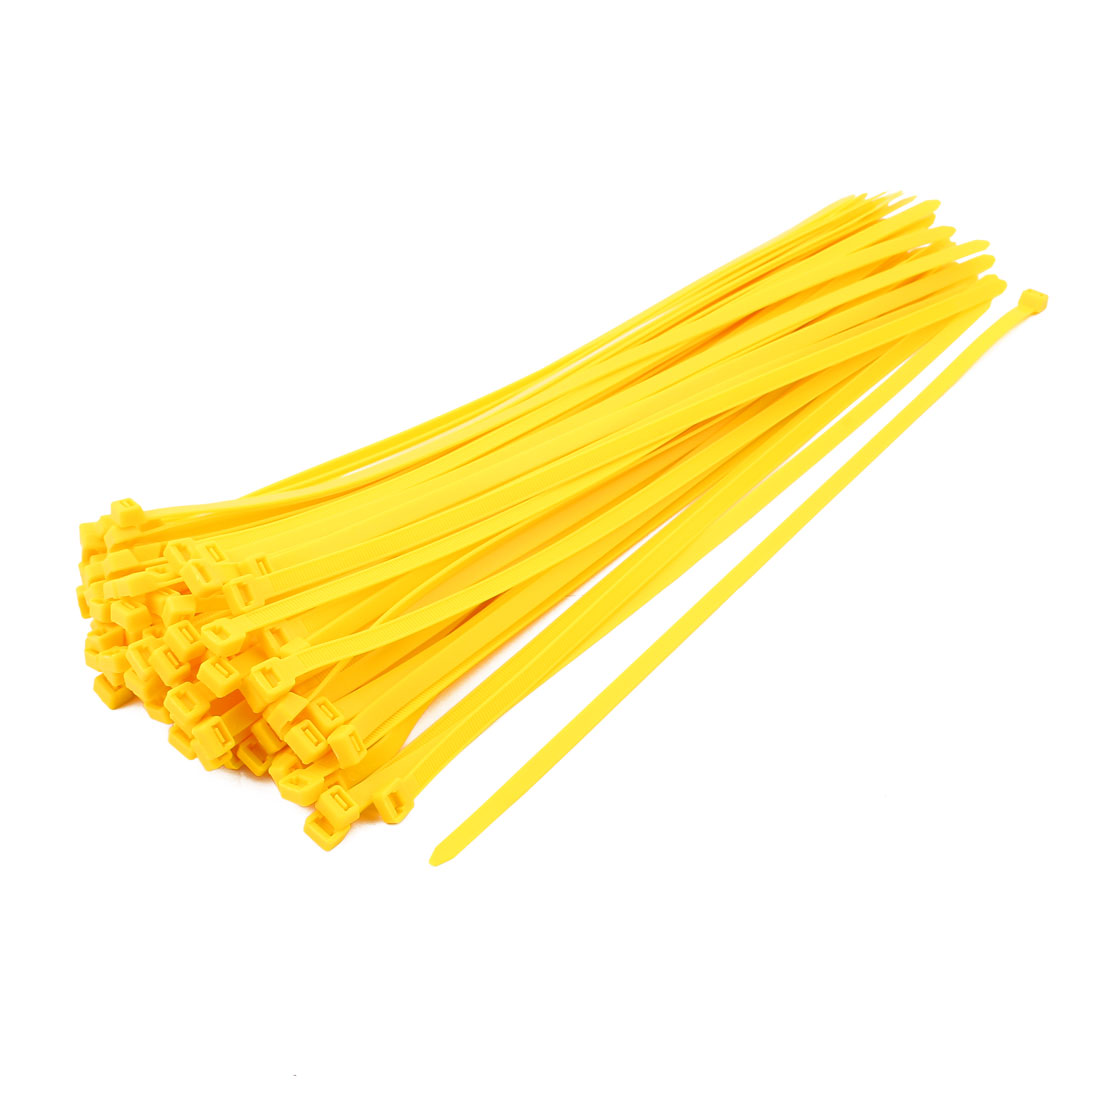 8mm x 400mm Self Locking Nylon Cable Ties Industrial Wire Zip Ties Yellow 100pcs